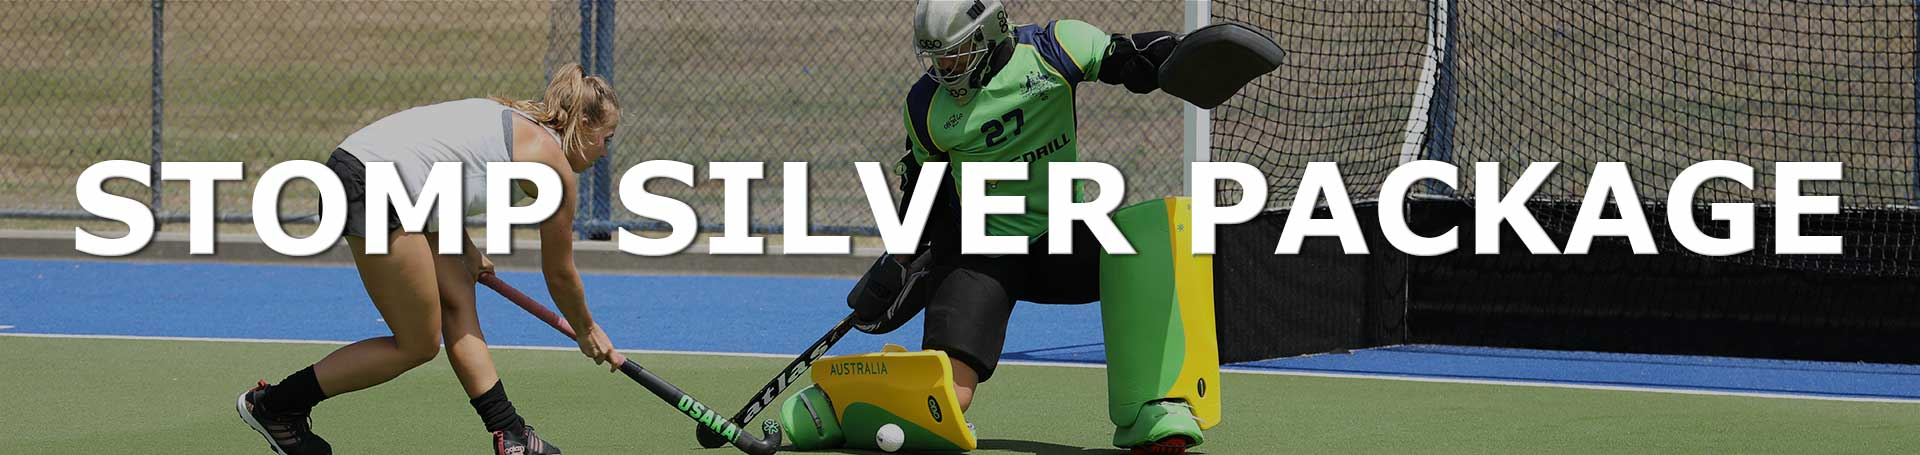 Goalkeeper coaching videos - STOMP silver